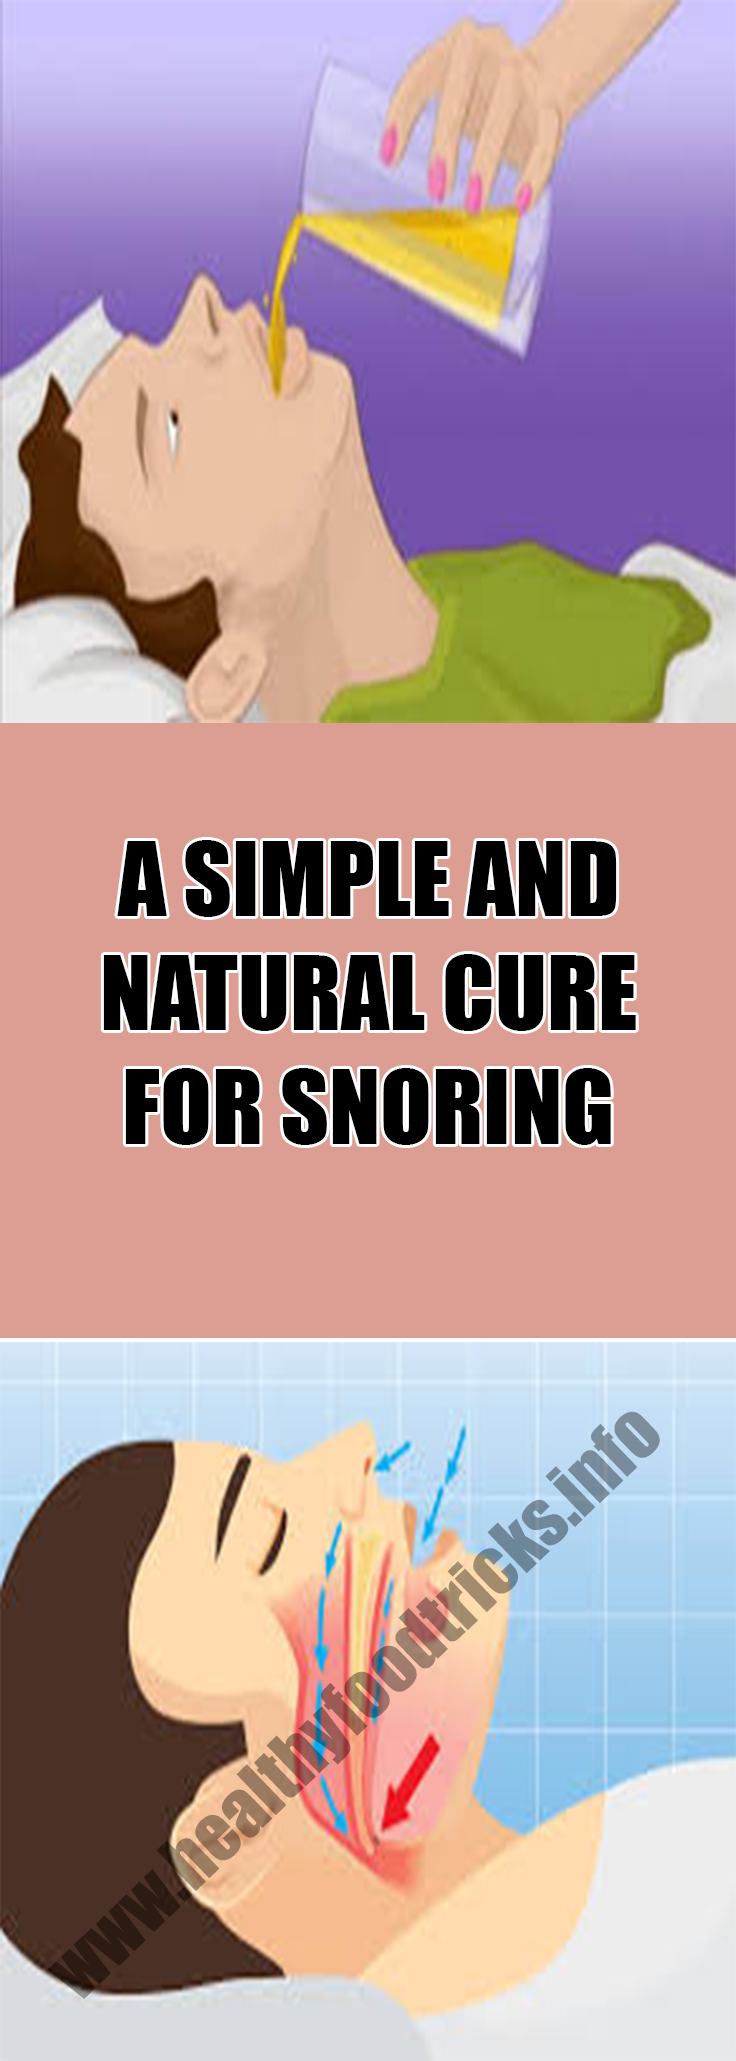 how to avoid snoring naturally